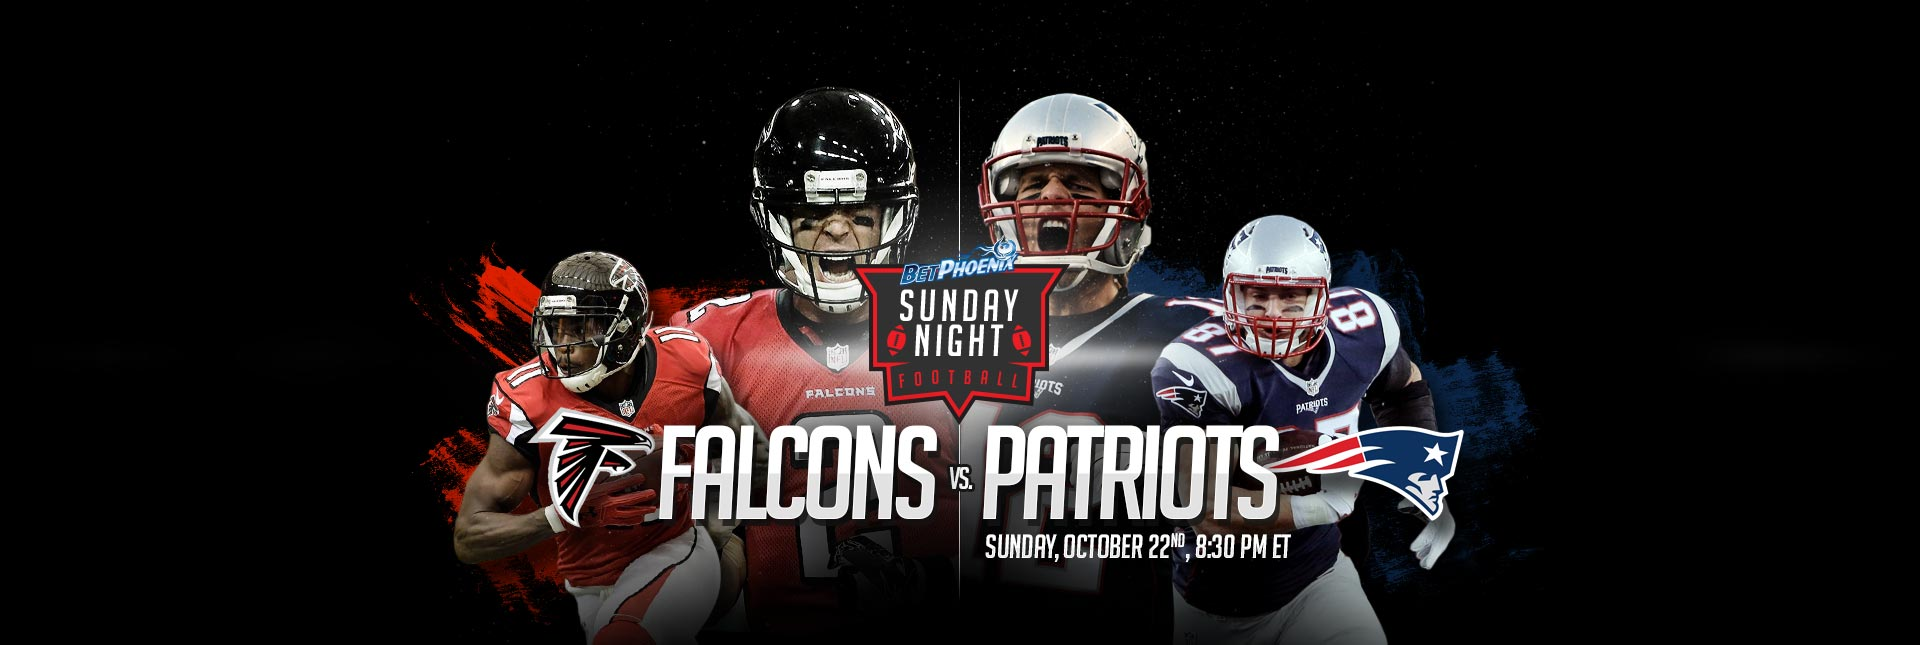 SNF - Falcons vs Patriots